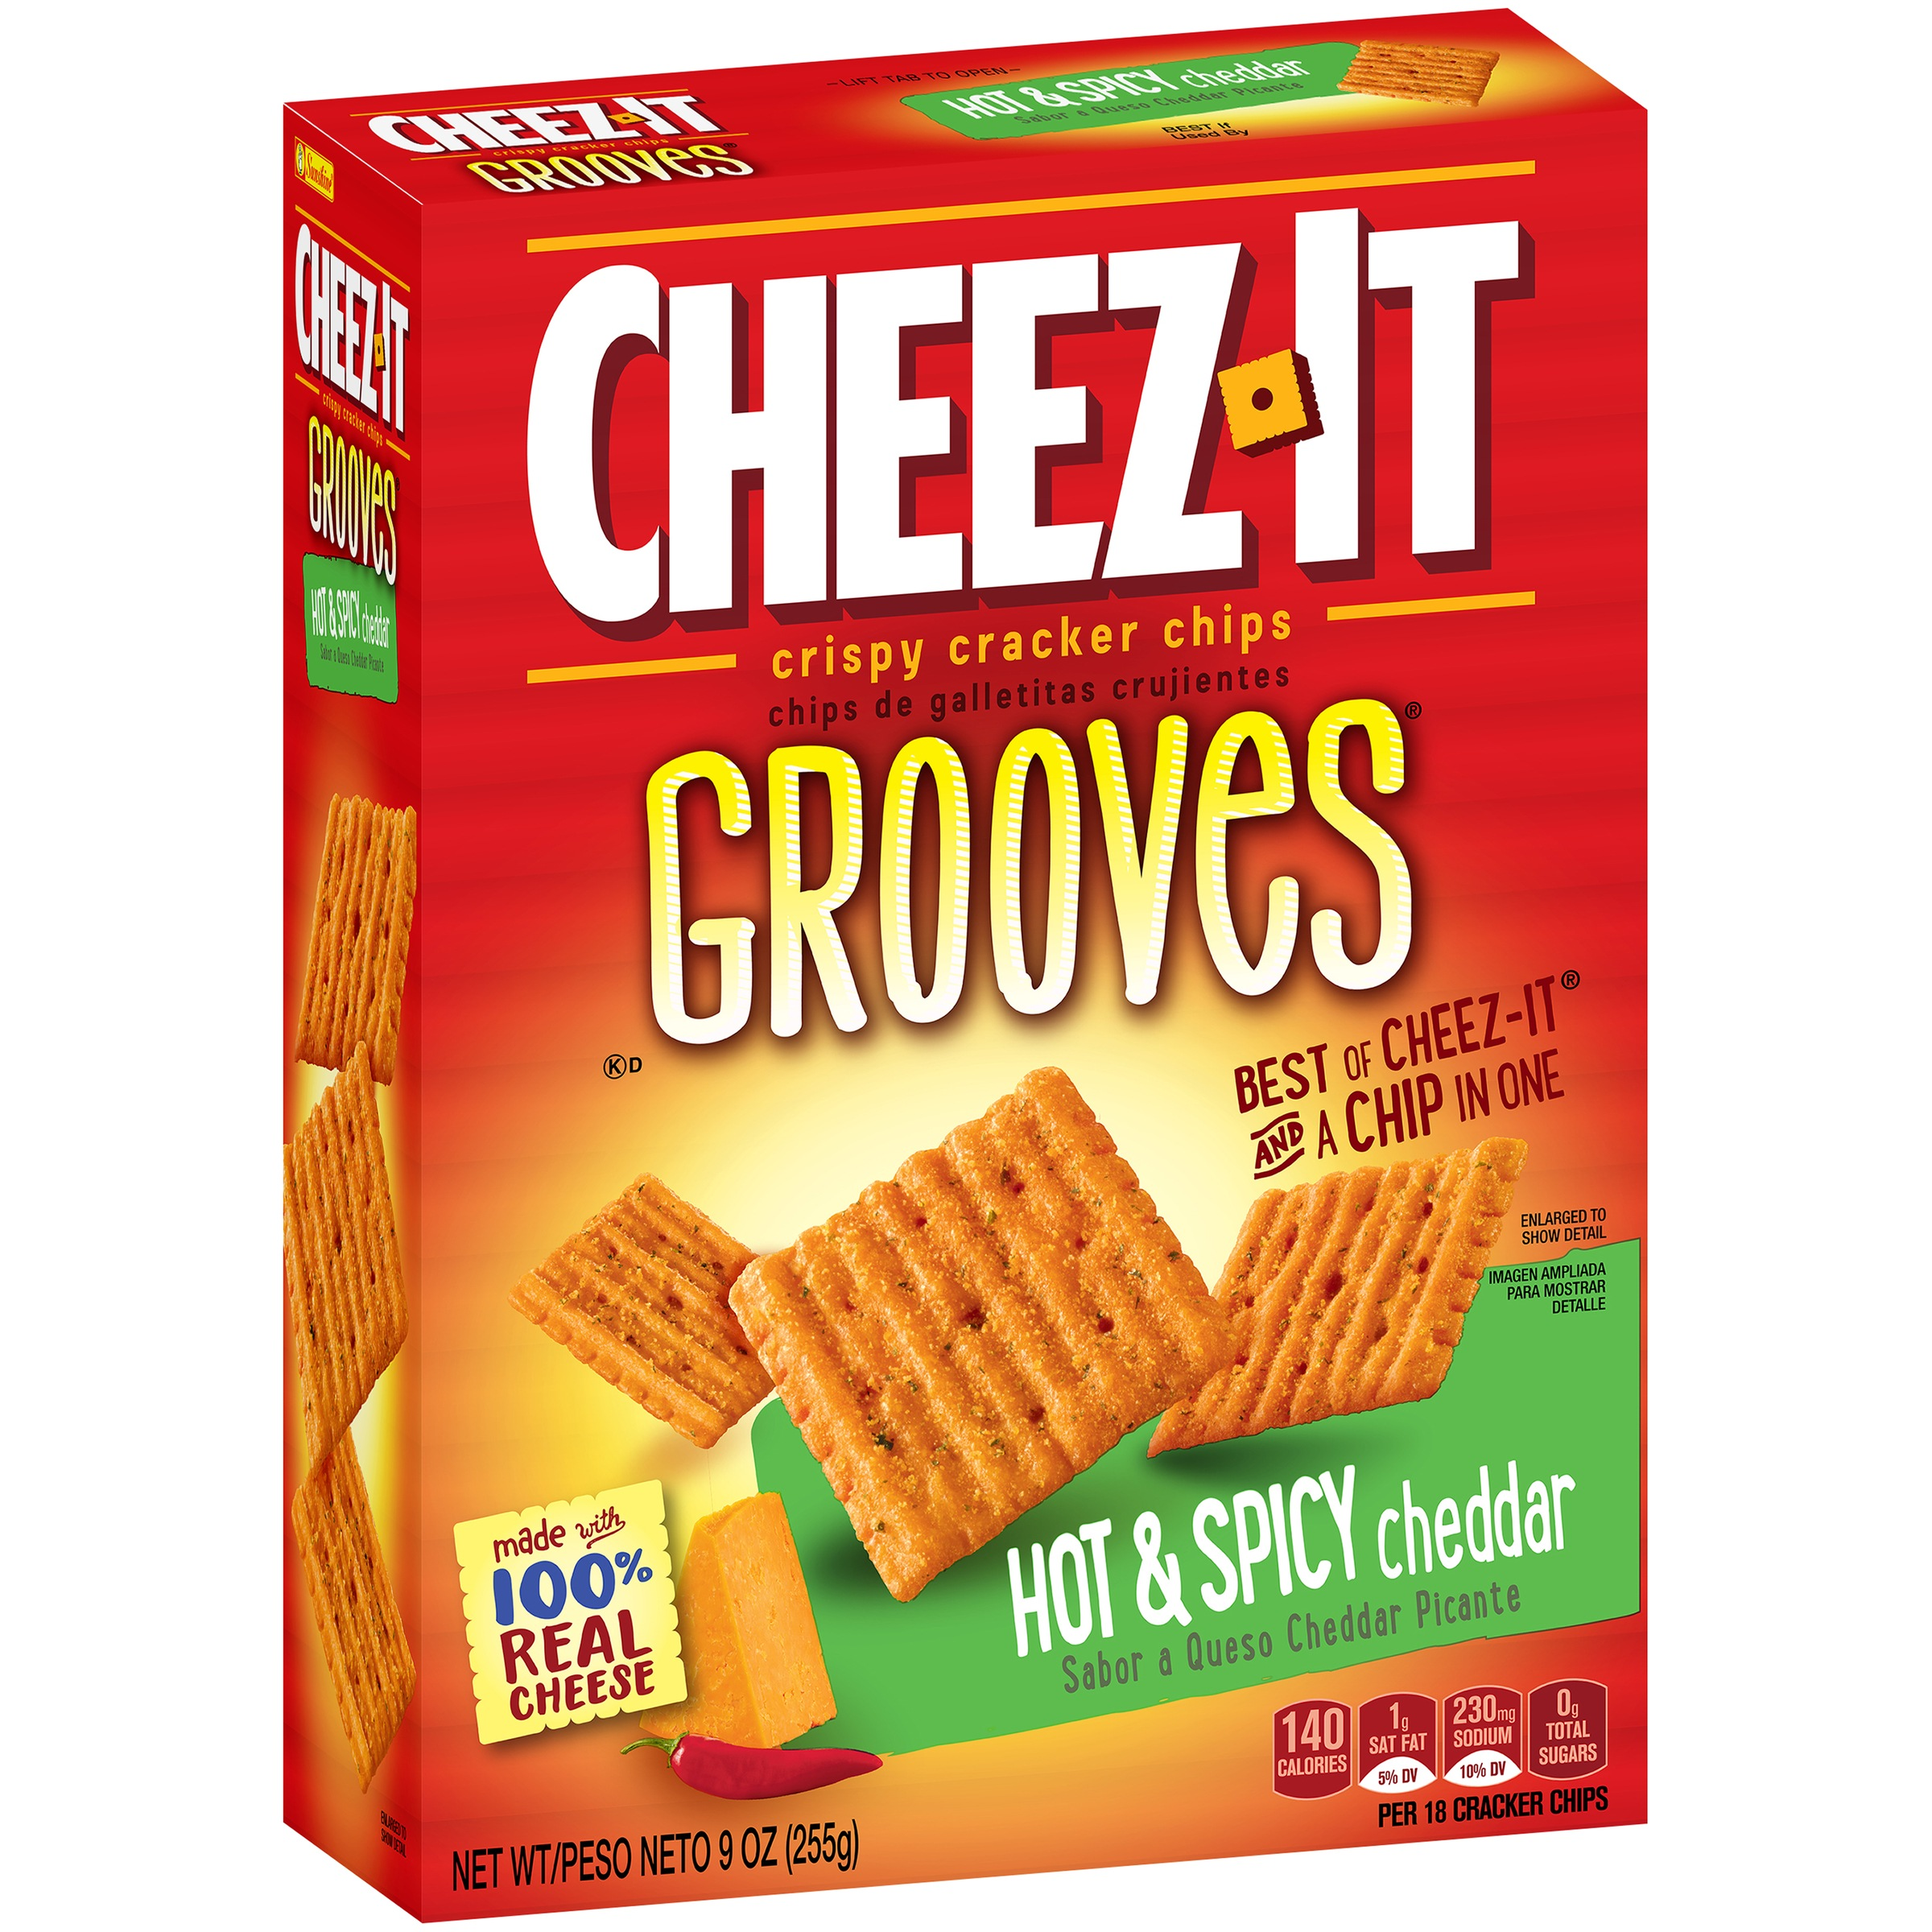 (2 Pack) Cheez-It Grooves Crispy Cheese Cracker Chips, Hot & Spicy Cheddar 9 oz